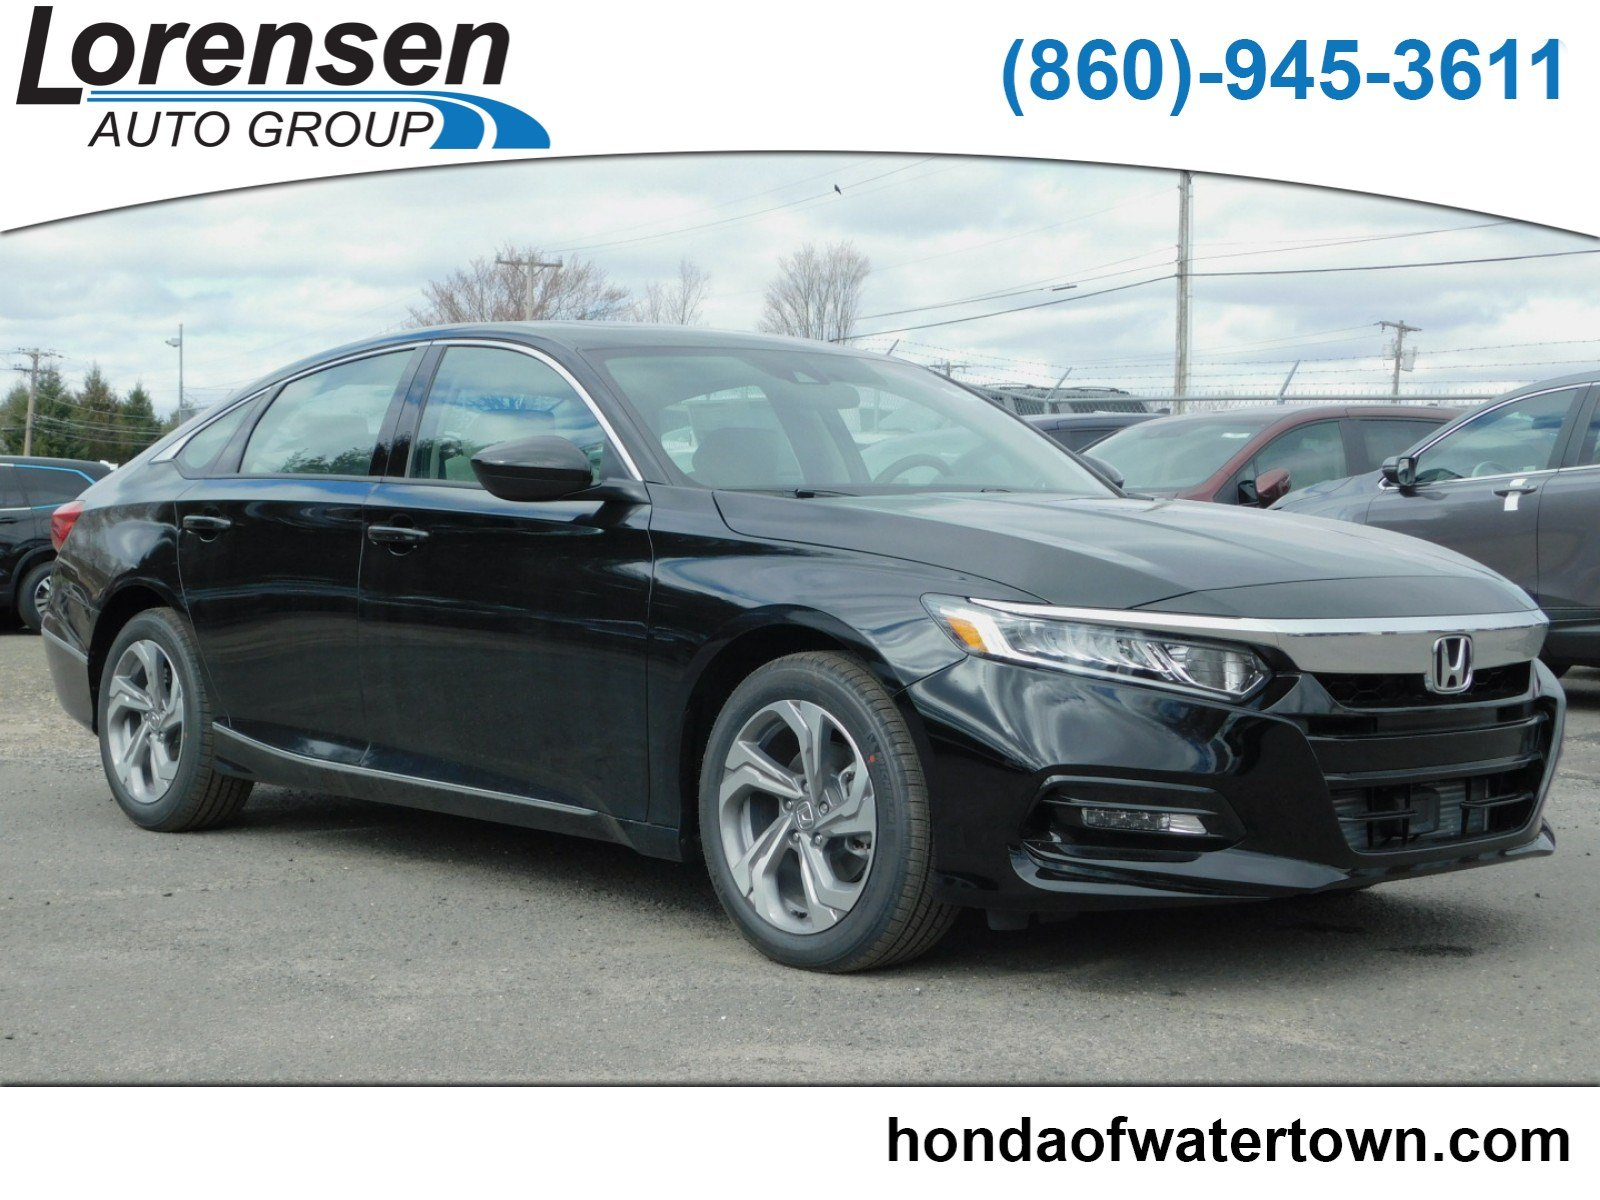 New 2018 Honda Accord Sedan EX 4dr Car in Westbrook